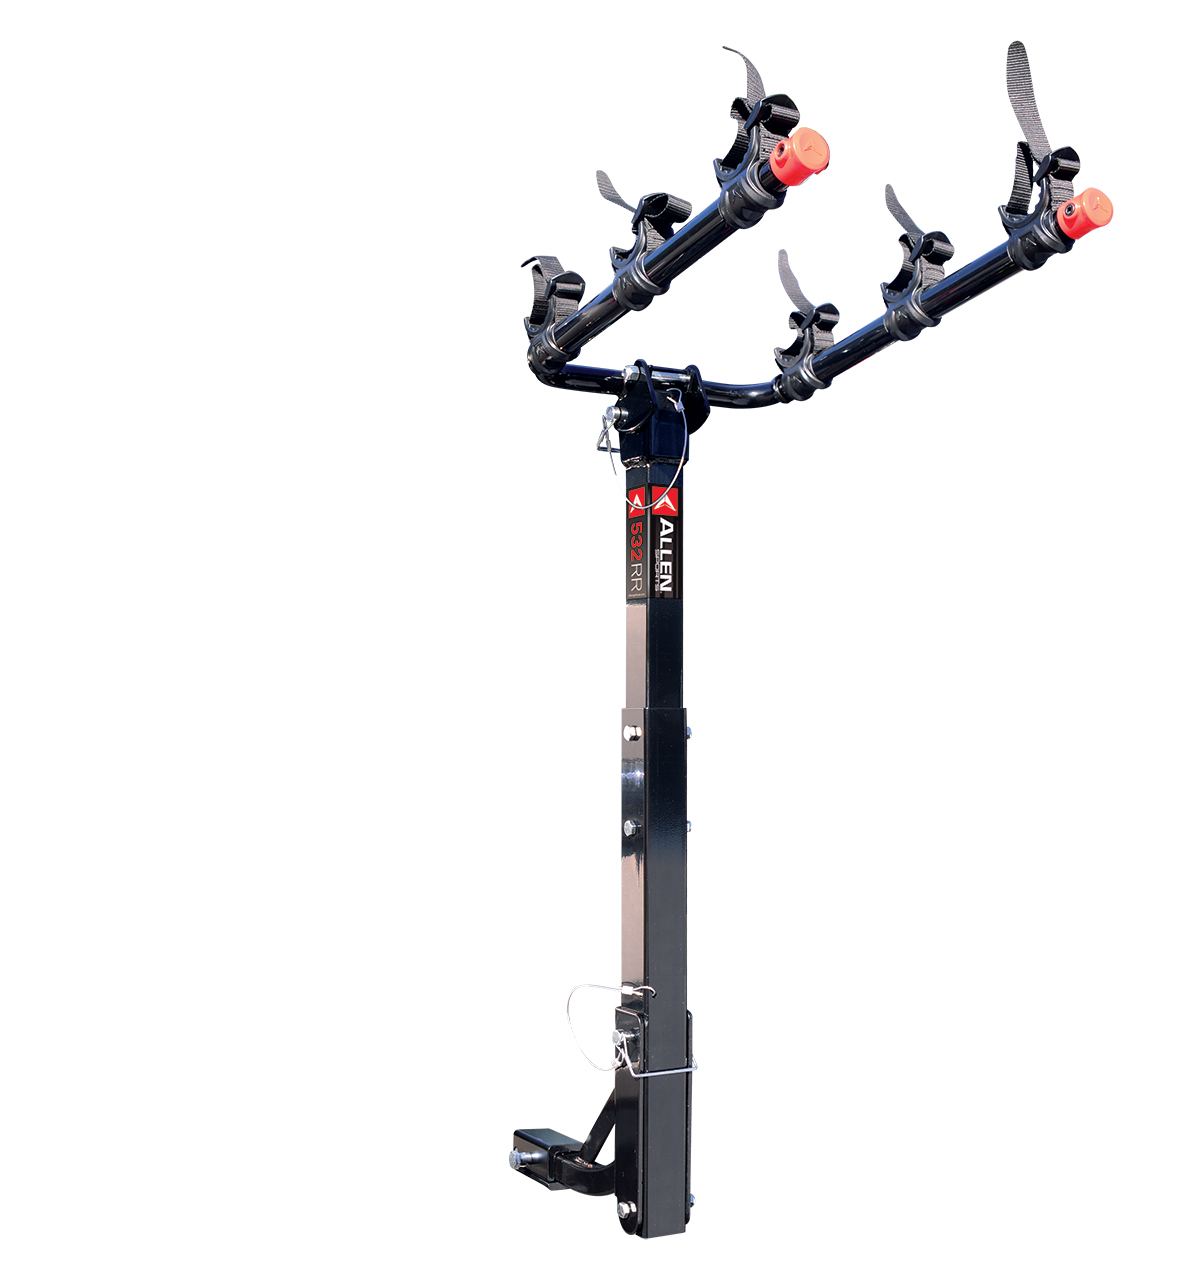 allen sports deluxe 3 bicycle hitch mounted bike rack carrier 532rr